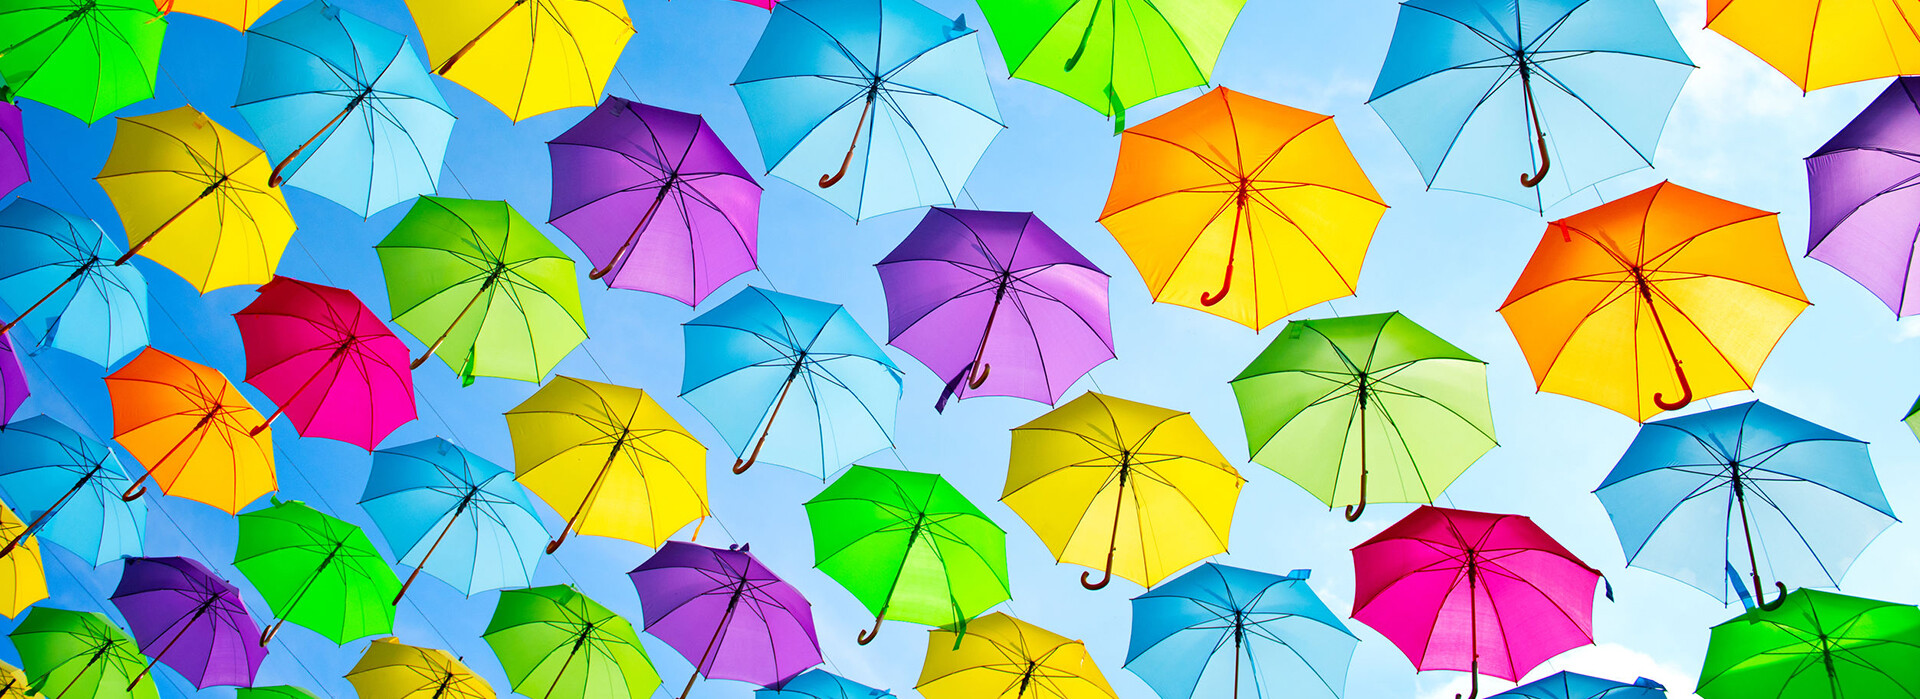 Do You Have an Umbrella Policy?